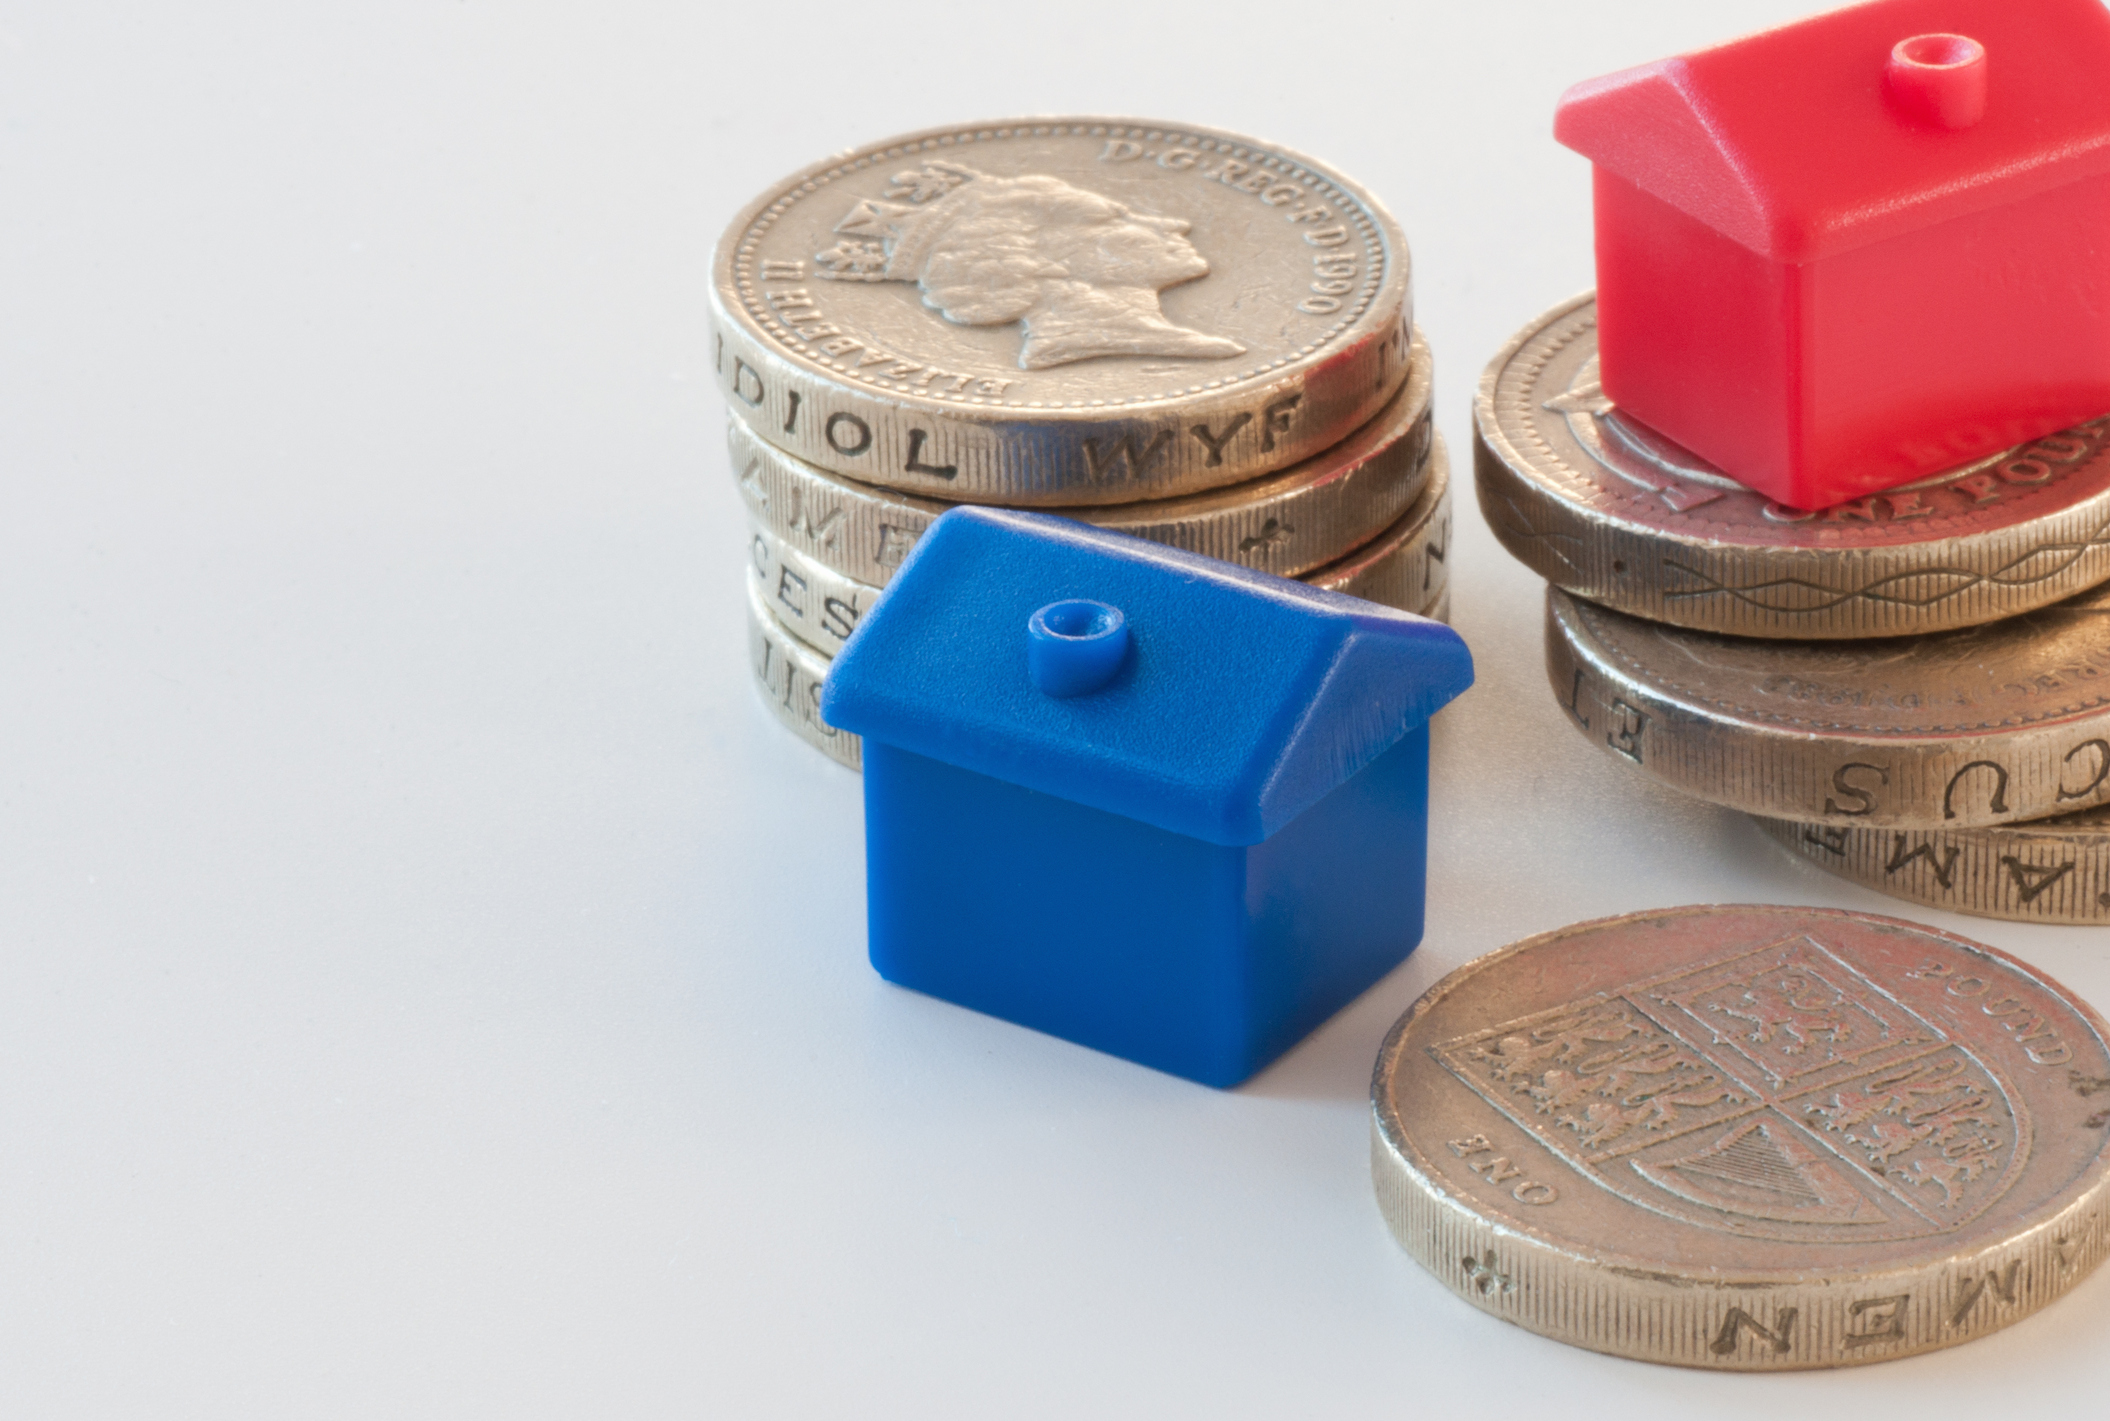 Residential Landlords Association rental payments Central Housing Group